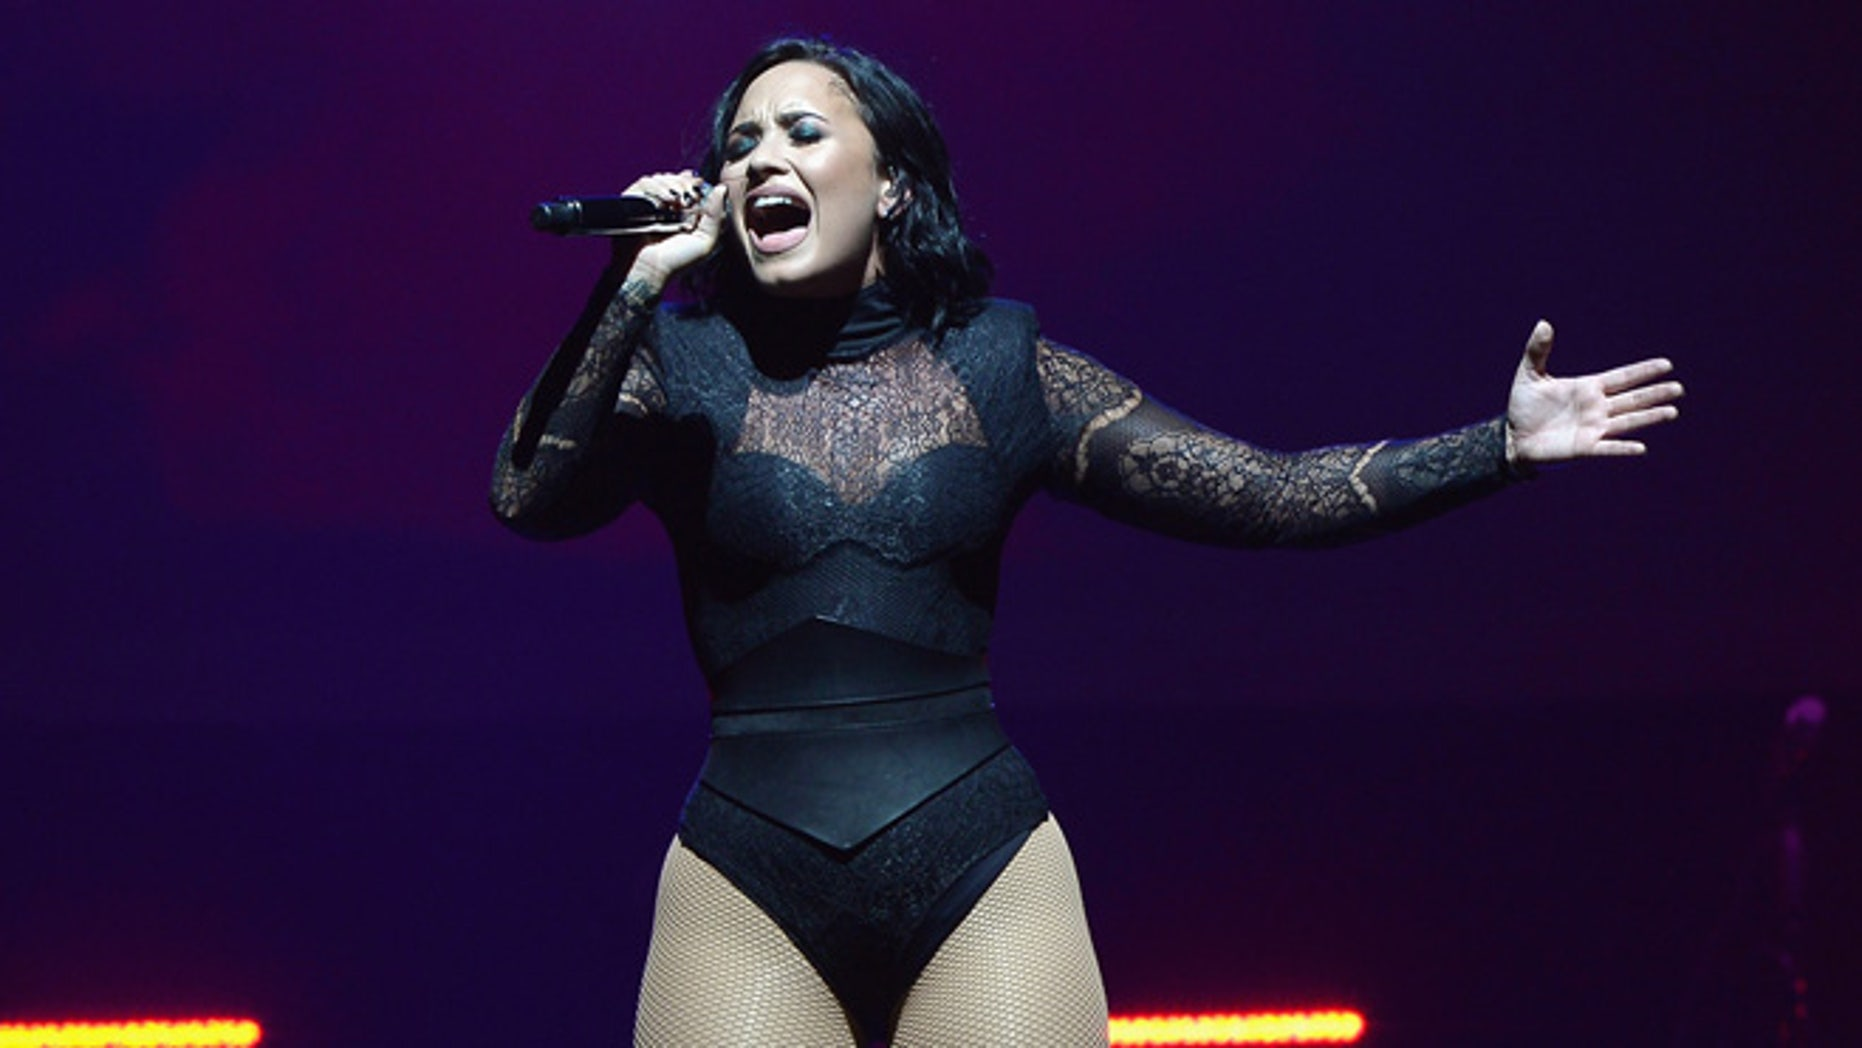 SUNRISE, FL - JULY 01:  Demi Lovato performs at BB&T Center on July 1, 2016 in Sunrise, Florida.  (Photo by Gustavo Caballero/Getty Images)